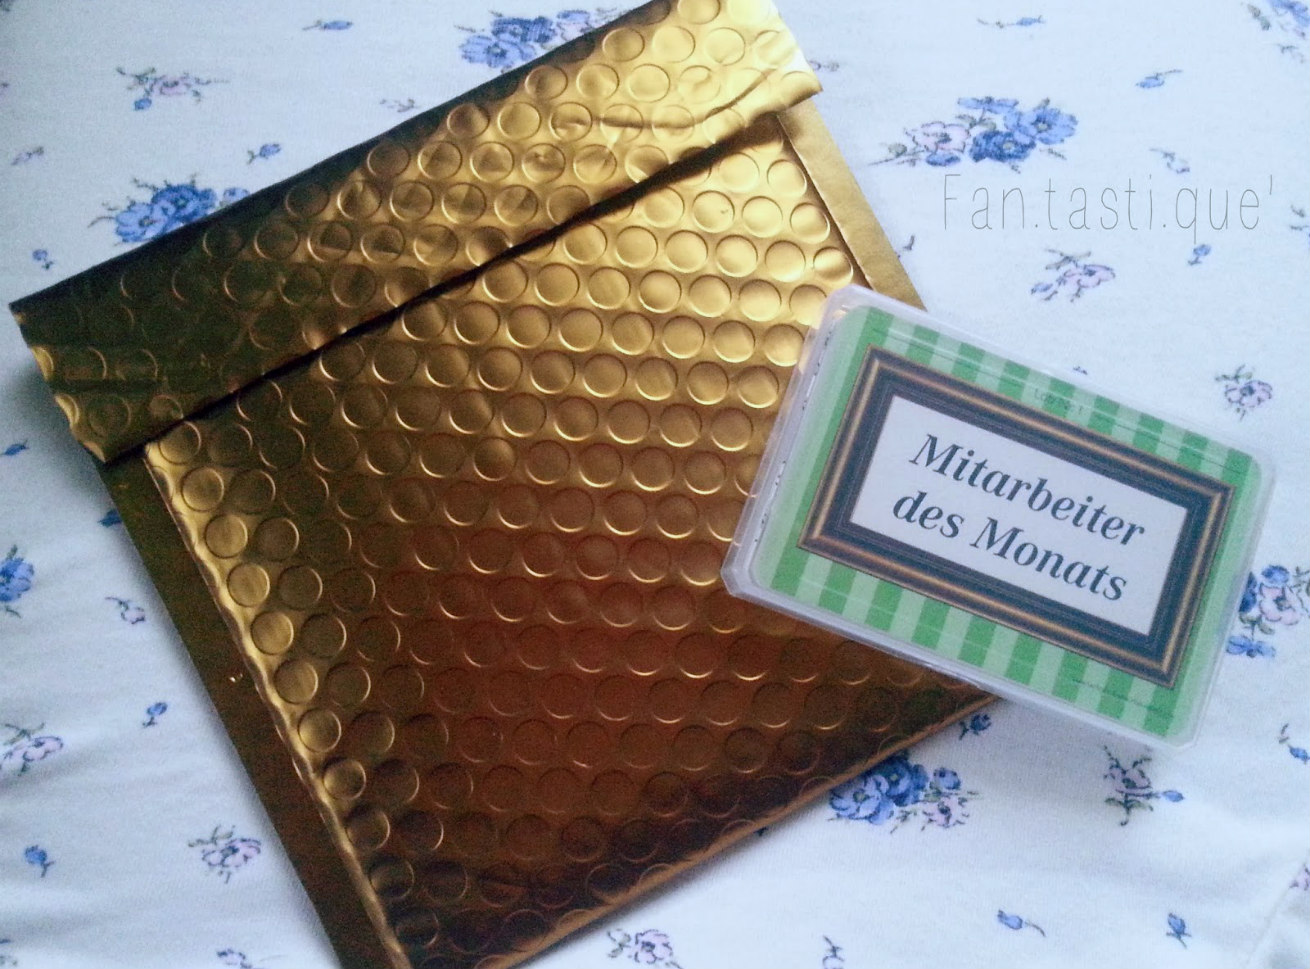 the pack of Lobkarten next to its golden packaging